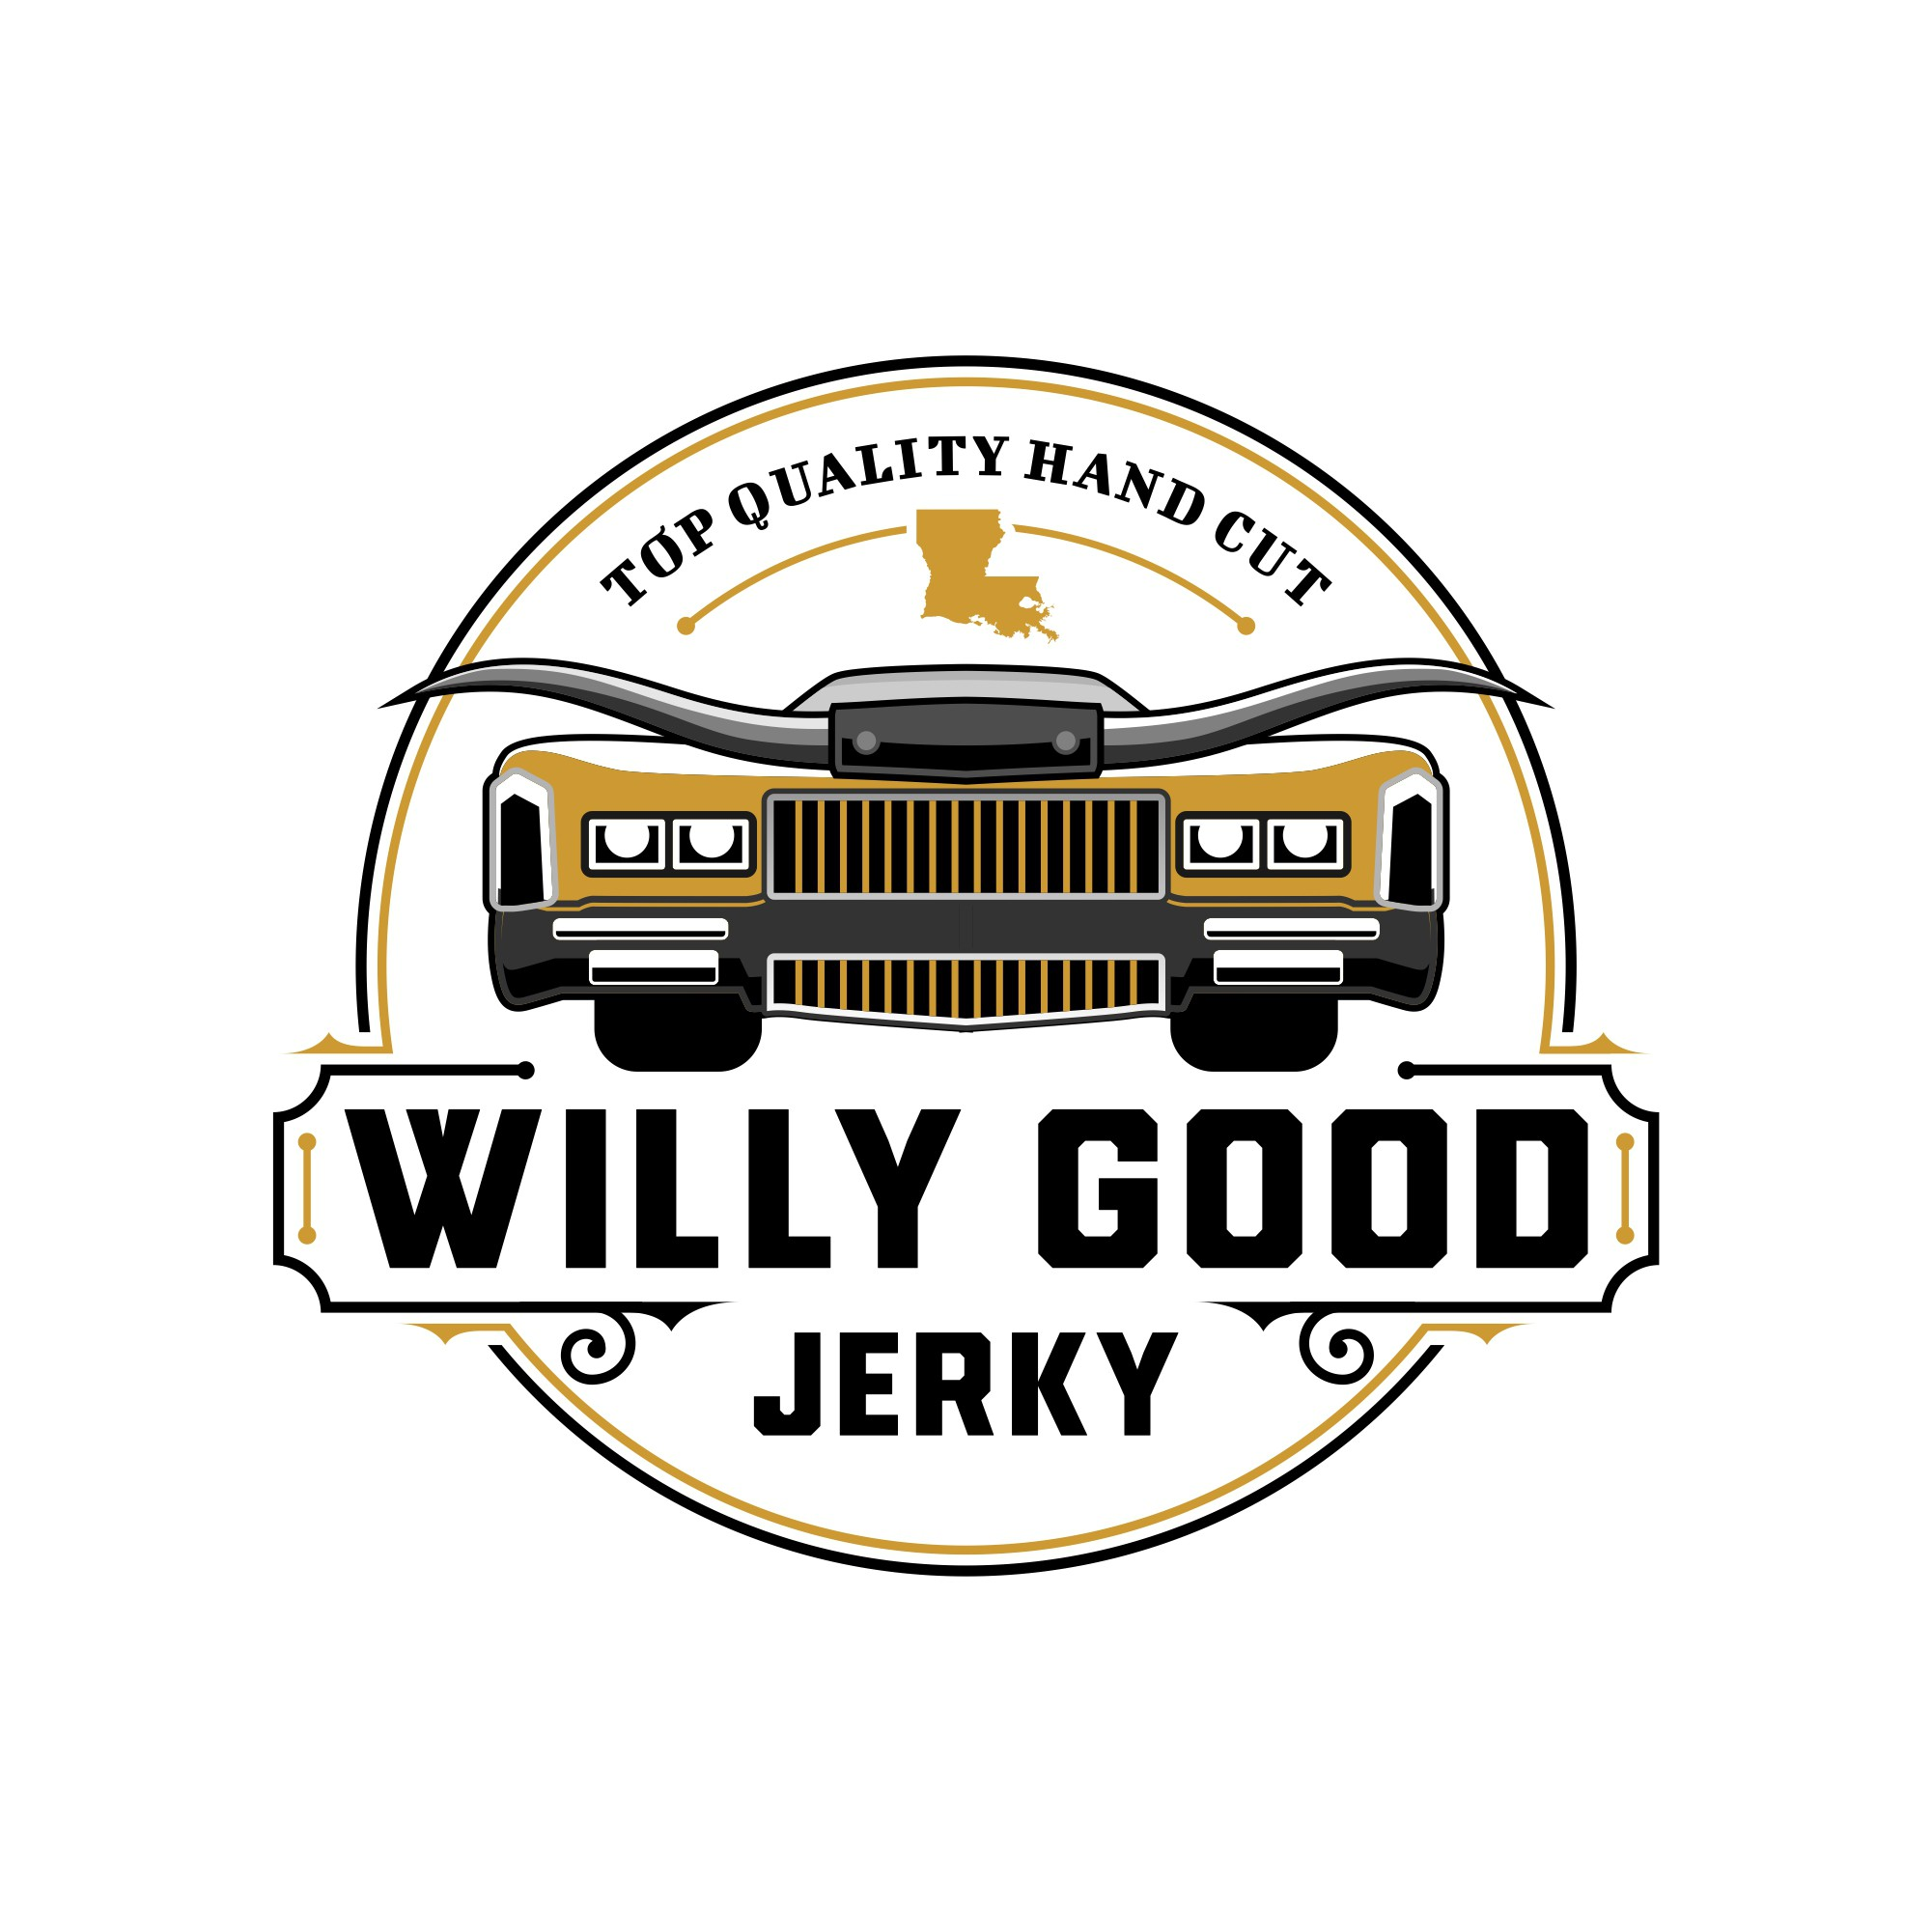 design a sweet logo for an awesome beef jerky company